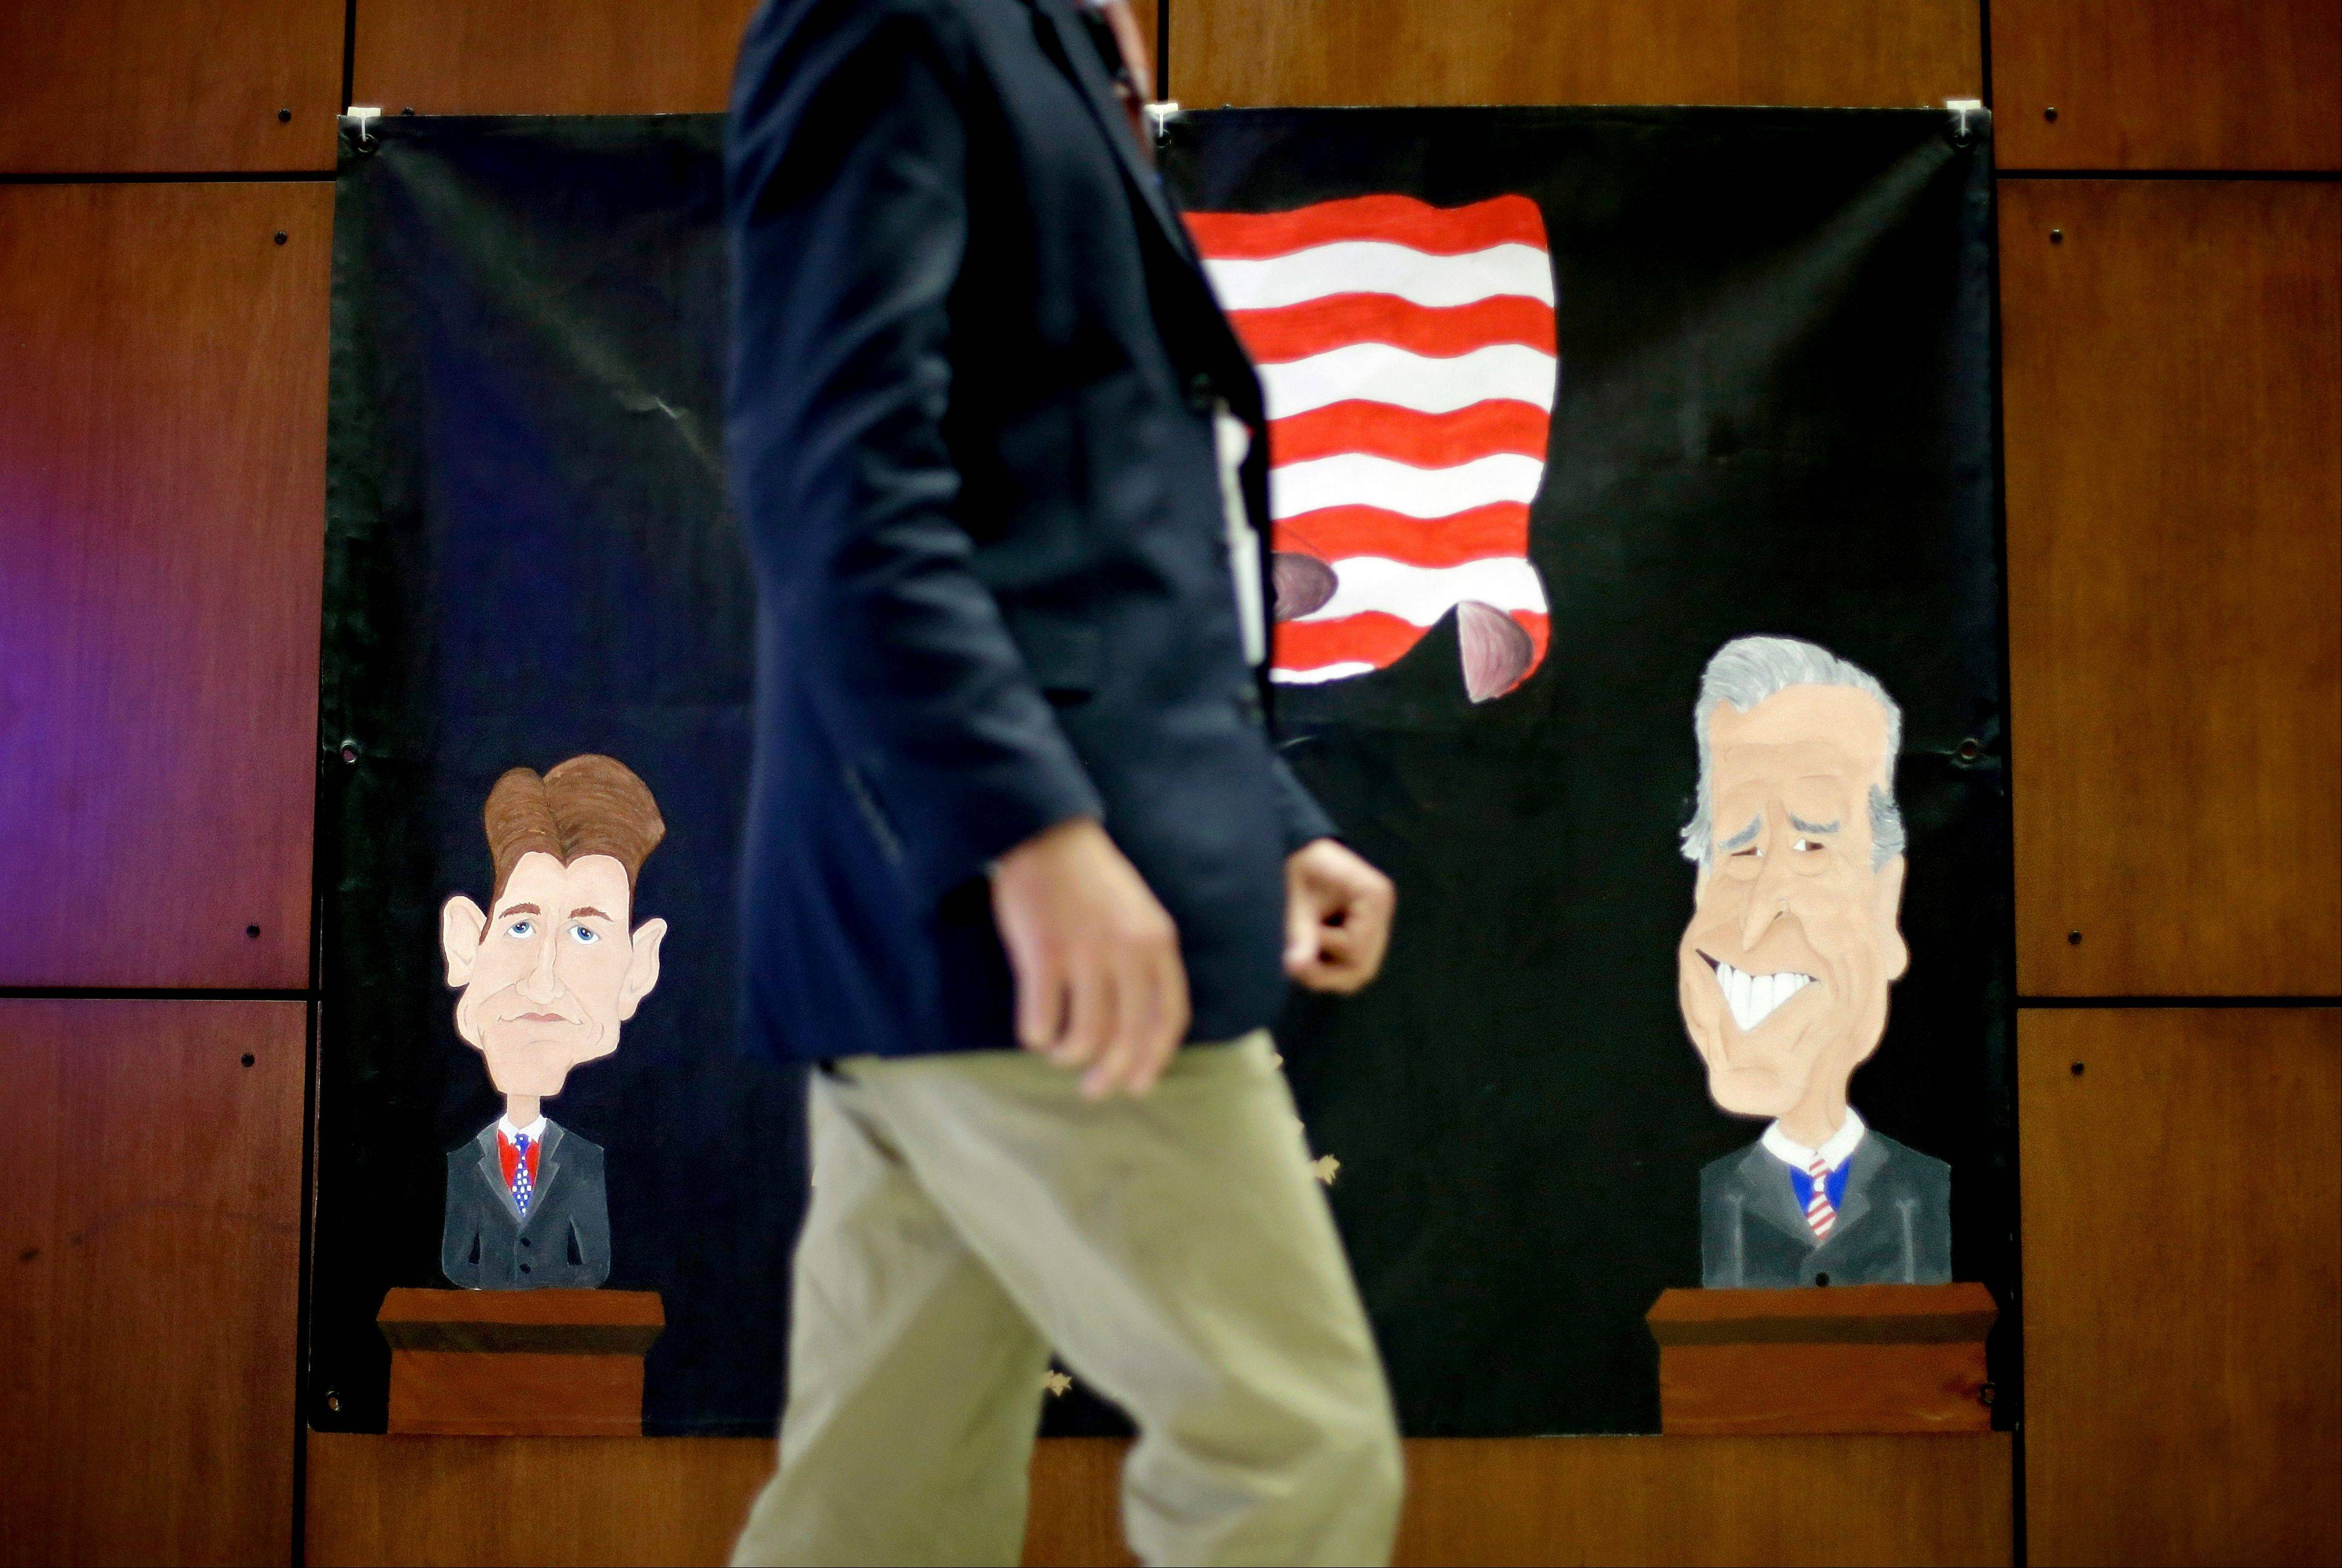 A banner made by a local middle school depicting Republican vice presidential candidate, Rep. Paul Ryan, R-Wis., at left, and Vice President Joe Biden, at right, hangs on the wall inside the media center ahead of Thursday's vice presidential debate at Centre College in Danville, Ky.